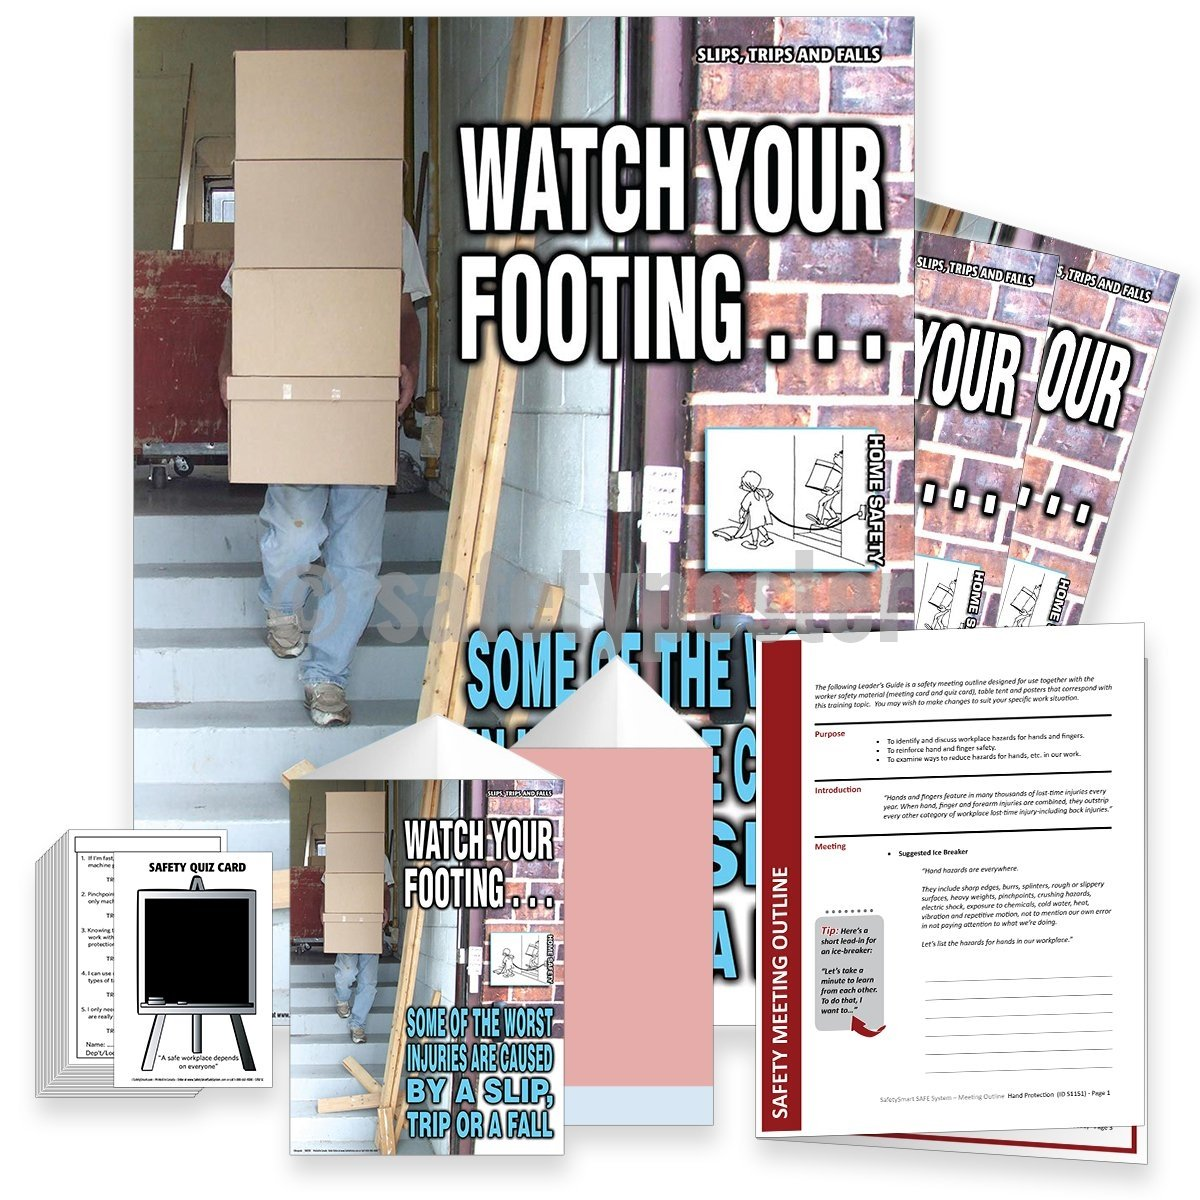 Safety Meeting Kit - Watch Your Footing Kits